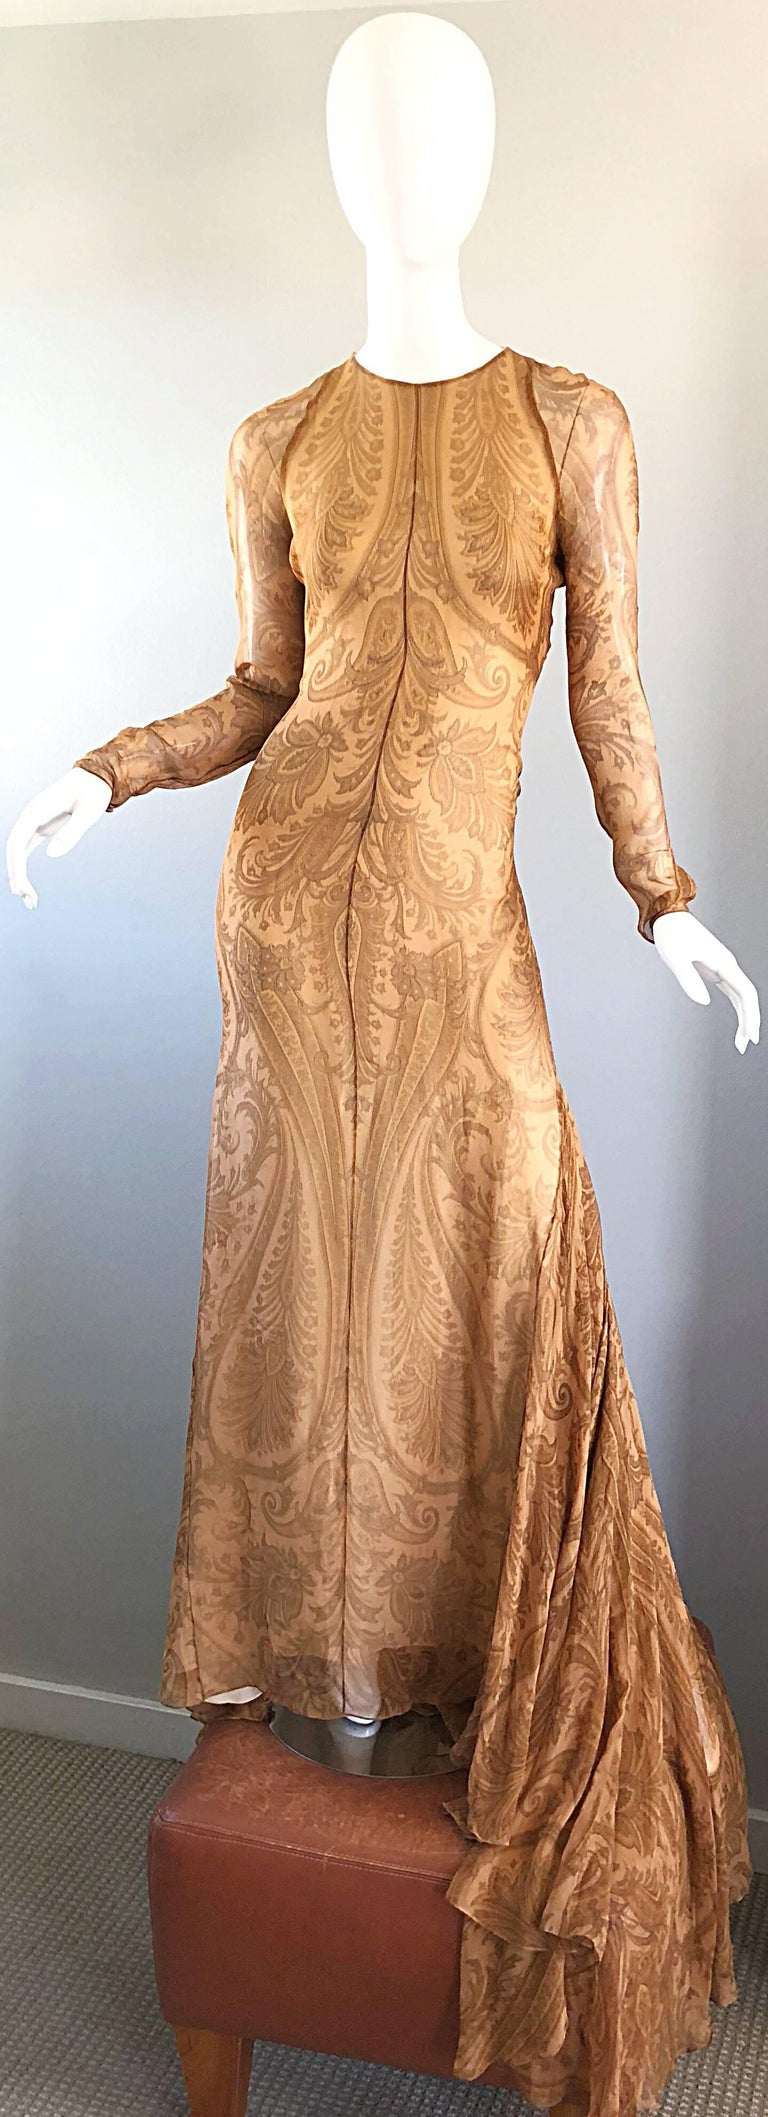 Sensational 1990s Bill Blass Couture Nude Silk Chiffon Paisley Vintage 90s Gown  For Sale 12